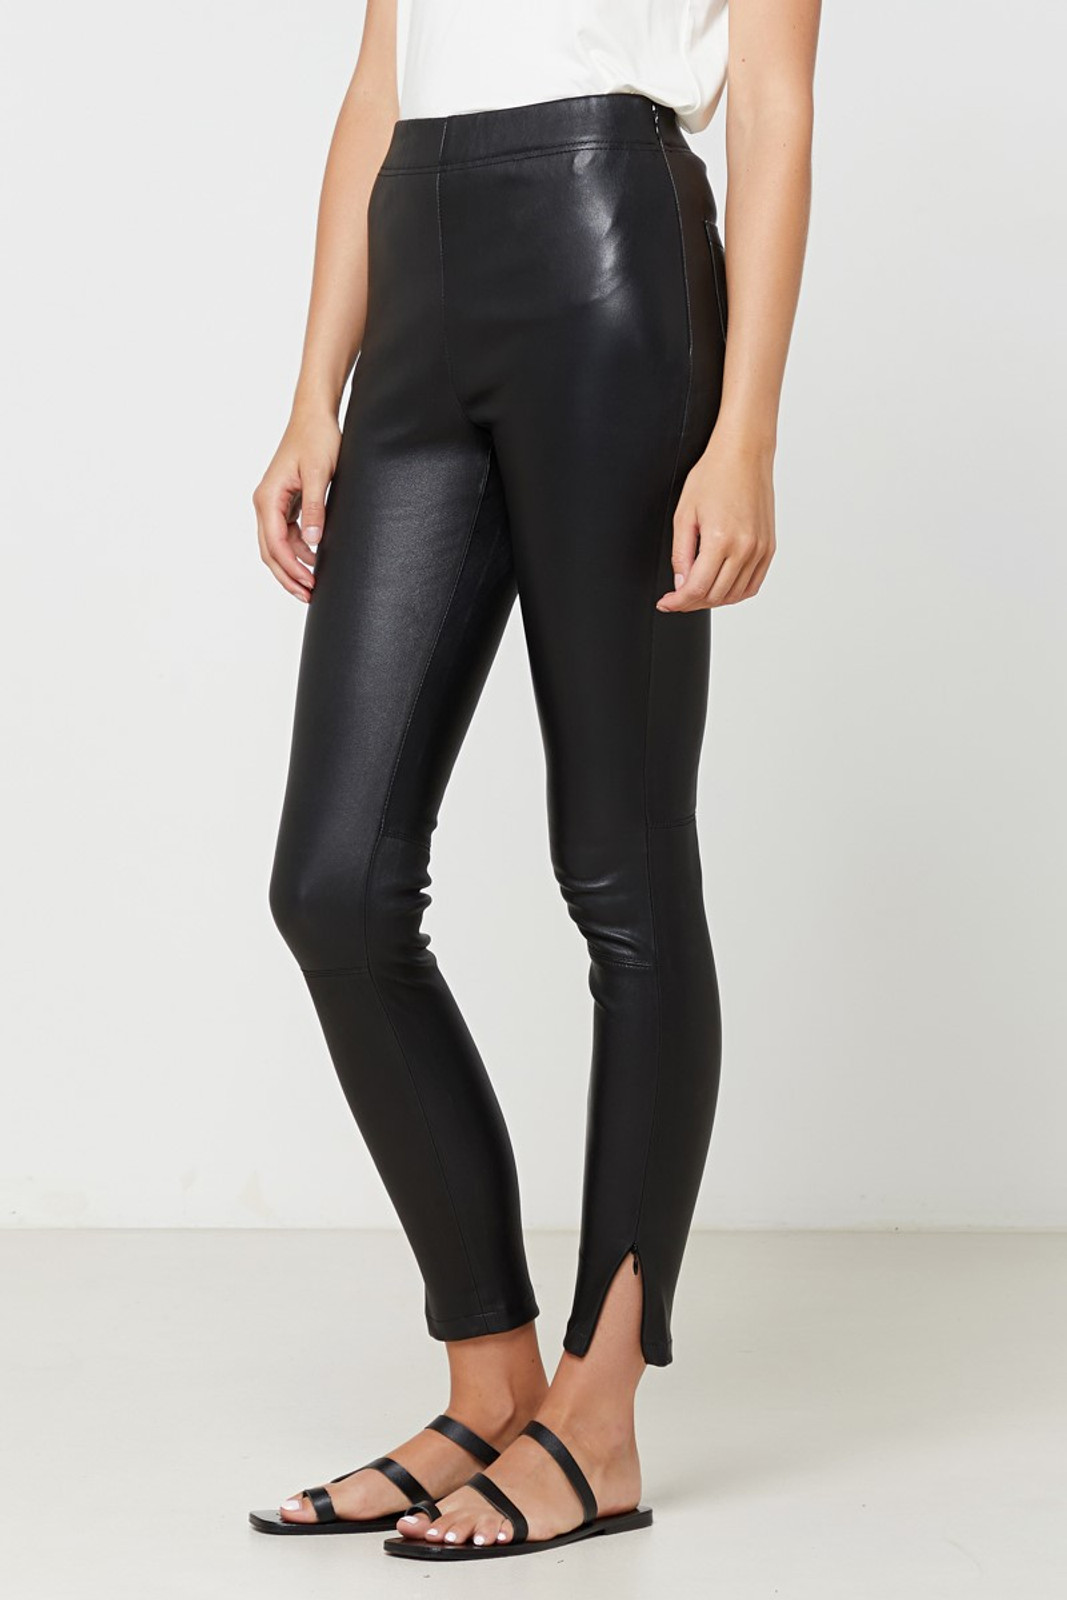 Elka Collective Rosa Leather Pant Black  1